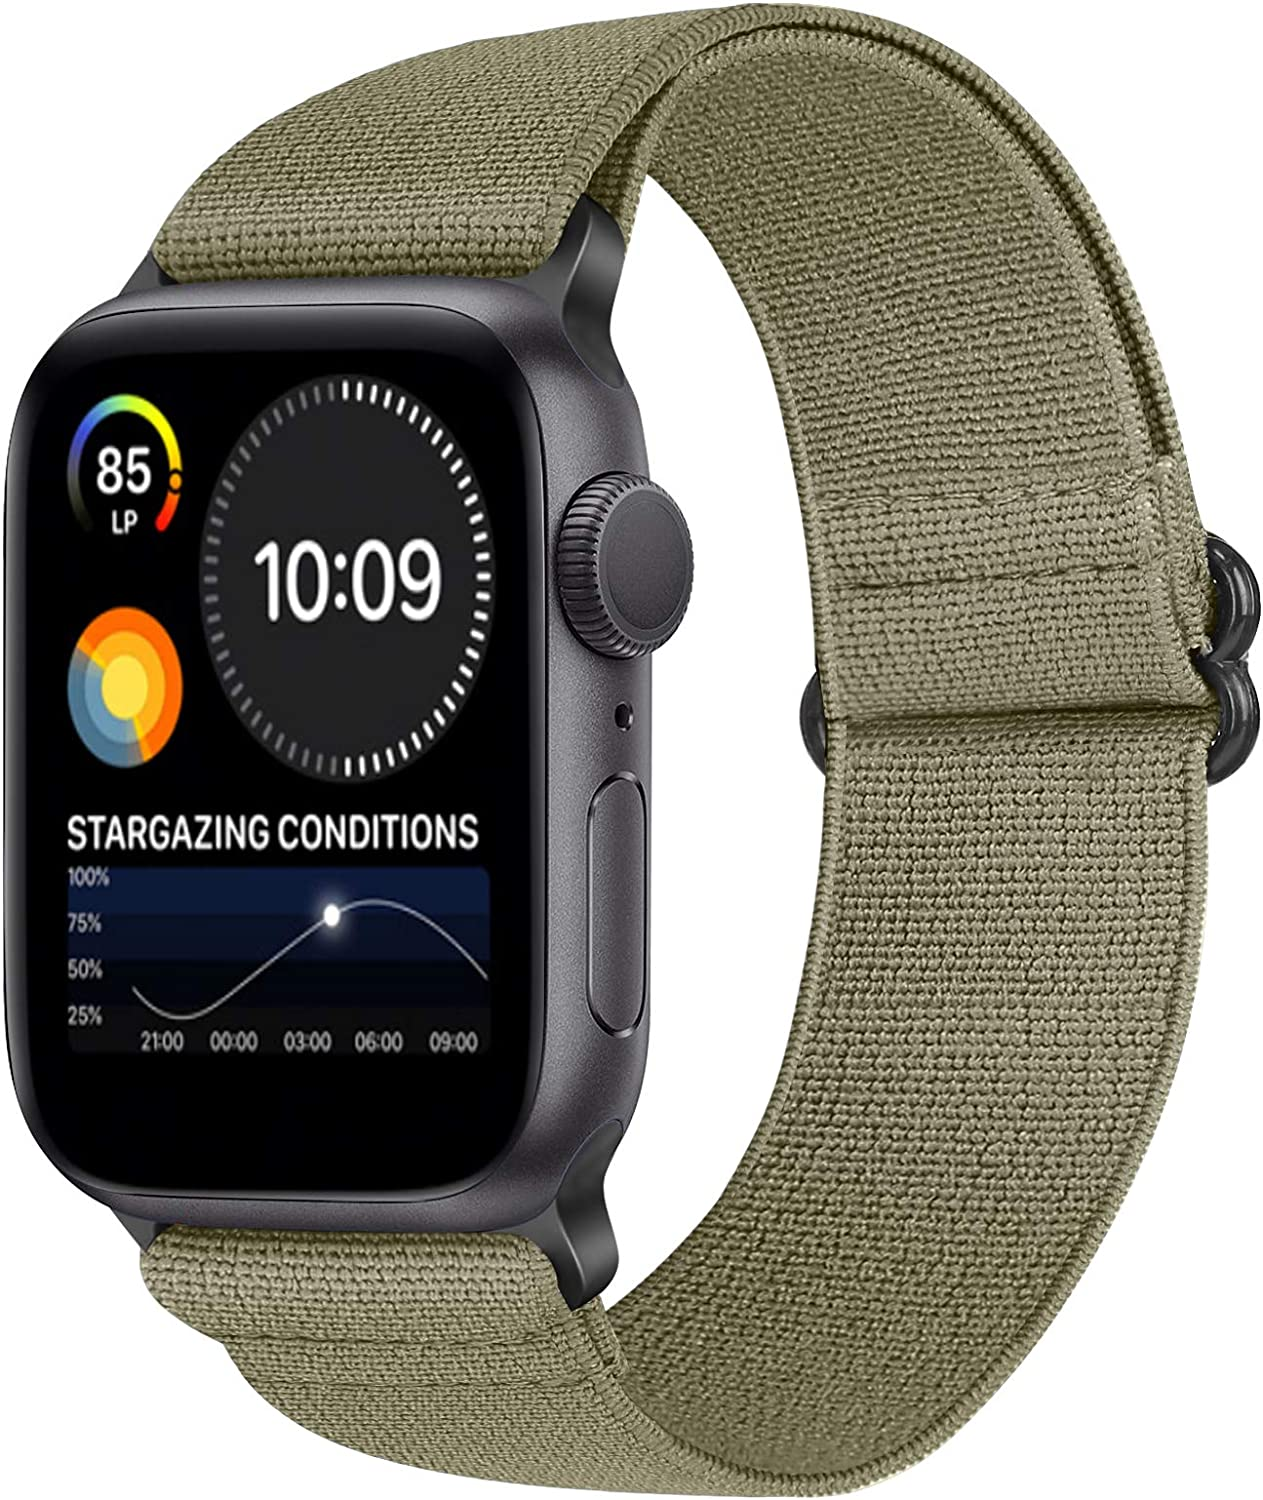 XFYELE Elastic Watch Band Compatible with Apple Watch 44mm 42mm, Adjustable Stretchy Bracelet Replacement Wristbands for iWatch Series SE/6/5/4/3/2/1